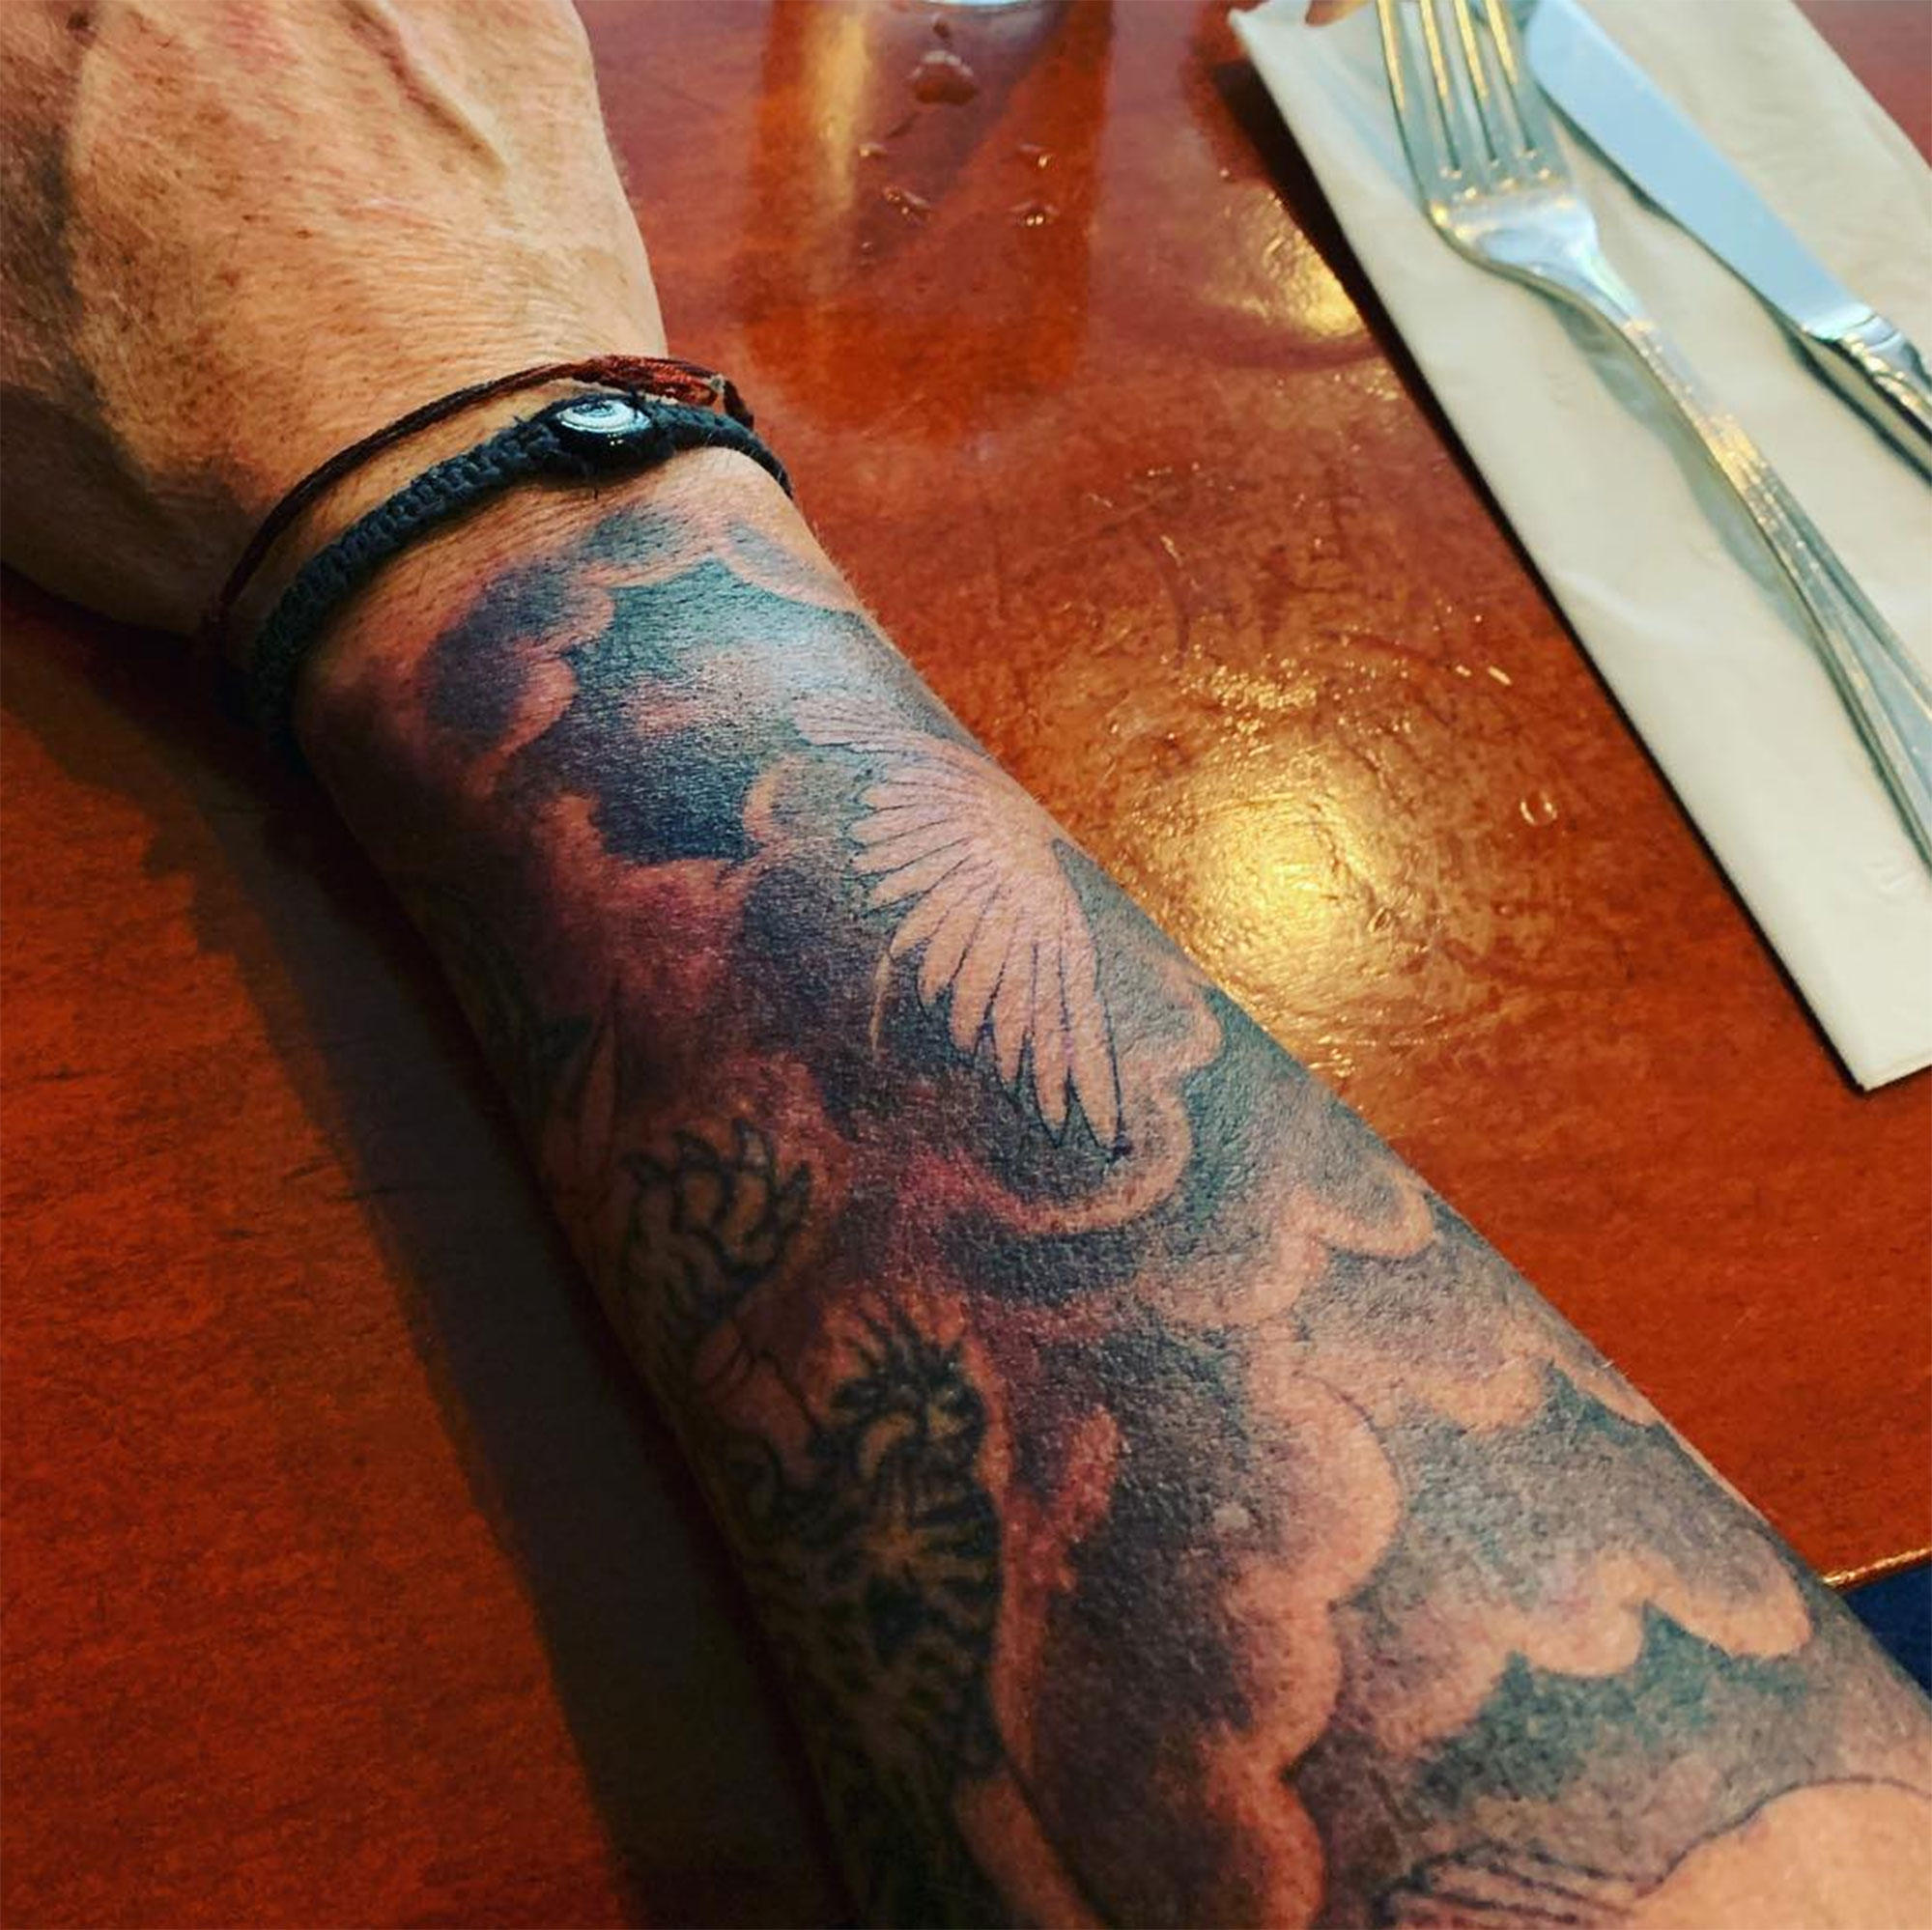 """Dylan McDermott's New Huge Tattoo Leads Our List of Crazy Celeb Ink - Only days after news broke that he and fiancée Maggie Q split, the actor took to Instagram on March 3, 2019, to show off his new """"half sleeve"""" by Hollywood tattoo artist Mark Mahoney."""